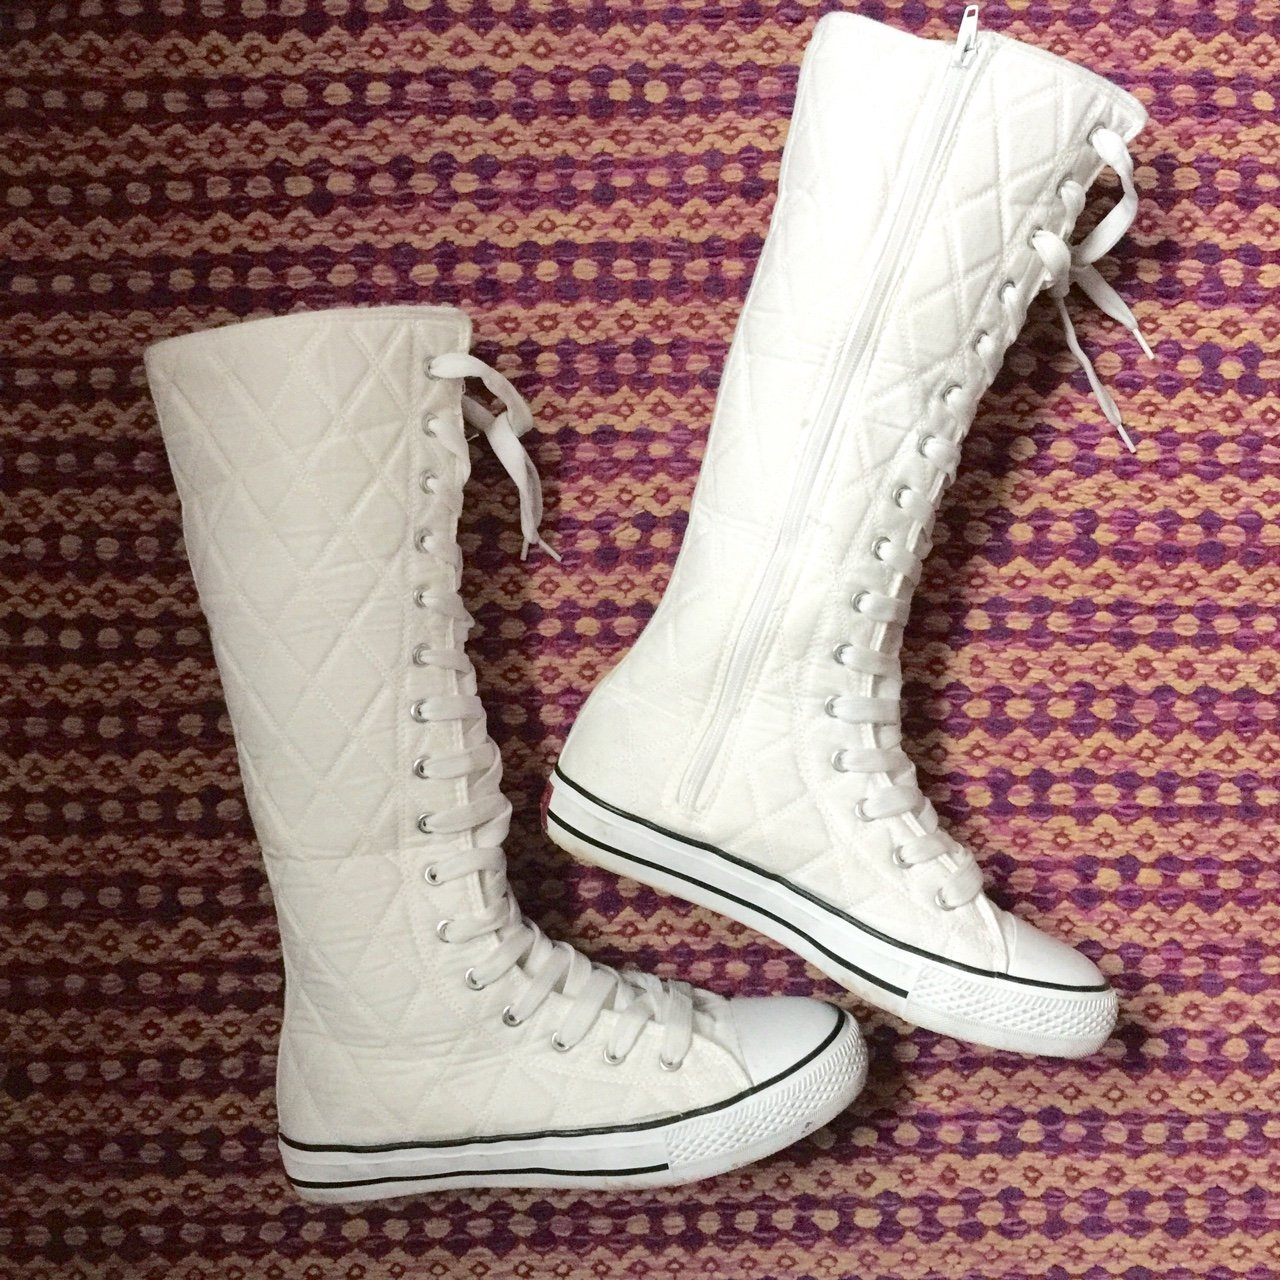 dbf4ec9b6d1f Knee high sneaker shoes in the style of Converse. White with - Depop